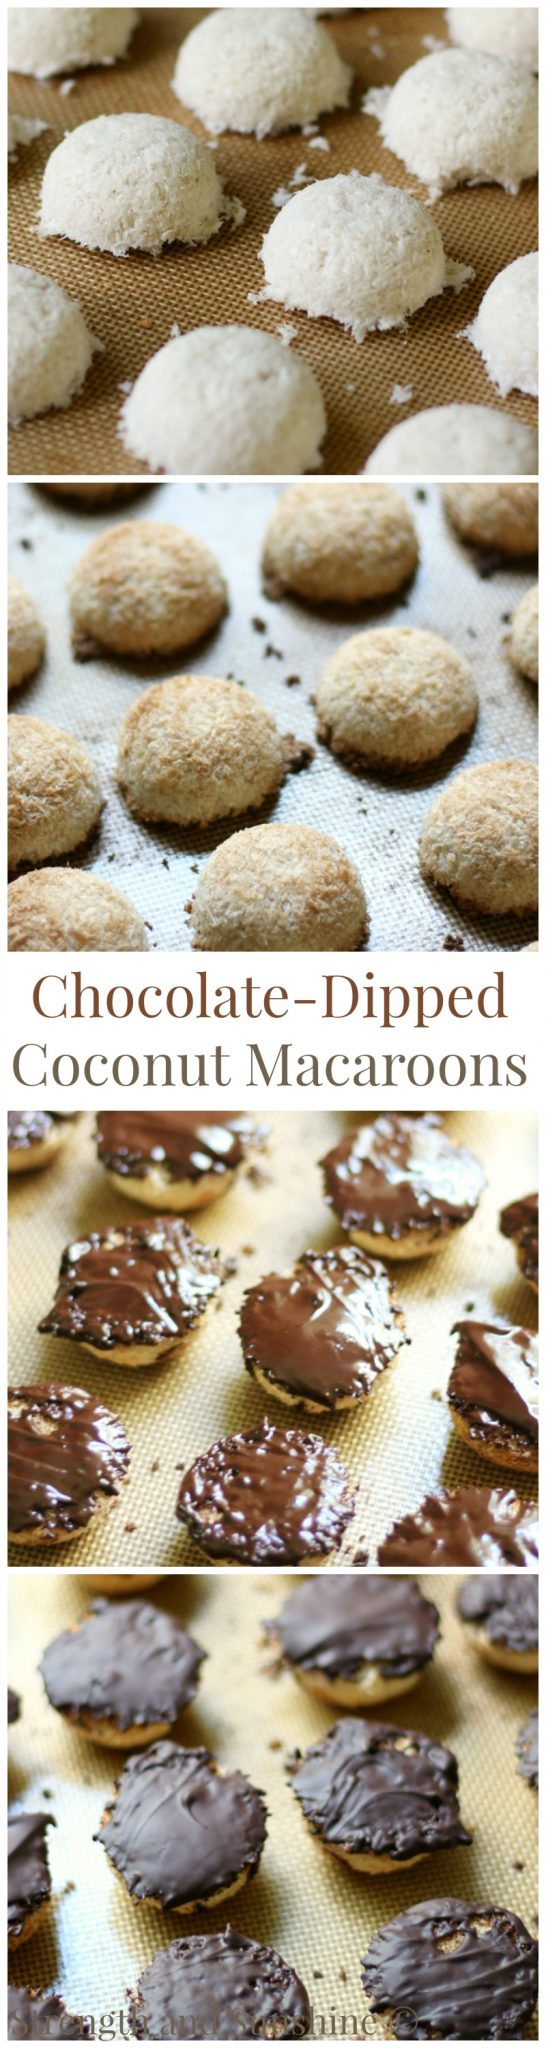 Chocolate-Dipped Coconut Macaroons | Strength and Sunshine @RebeccaGF666 A sweet and fancy treat for any occasion! Chocolate-Dipped Coconut Macaroons are a delicious and easy, gluten-free, vegan, paleo, and allergy-free dessert recipe. Everyone will be wowed by this healthy coconut and chocolate bite!